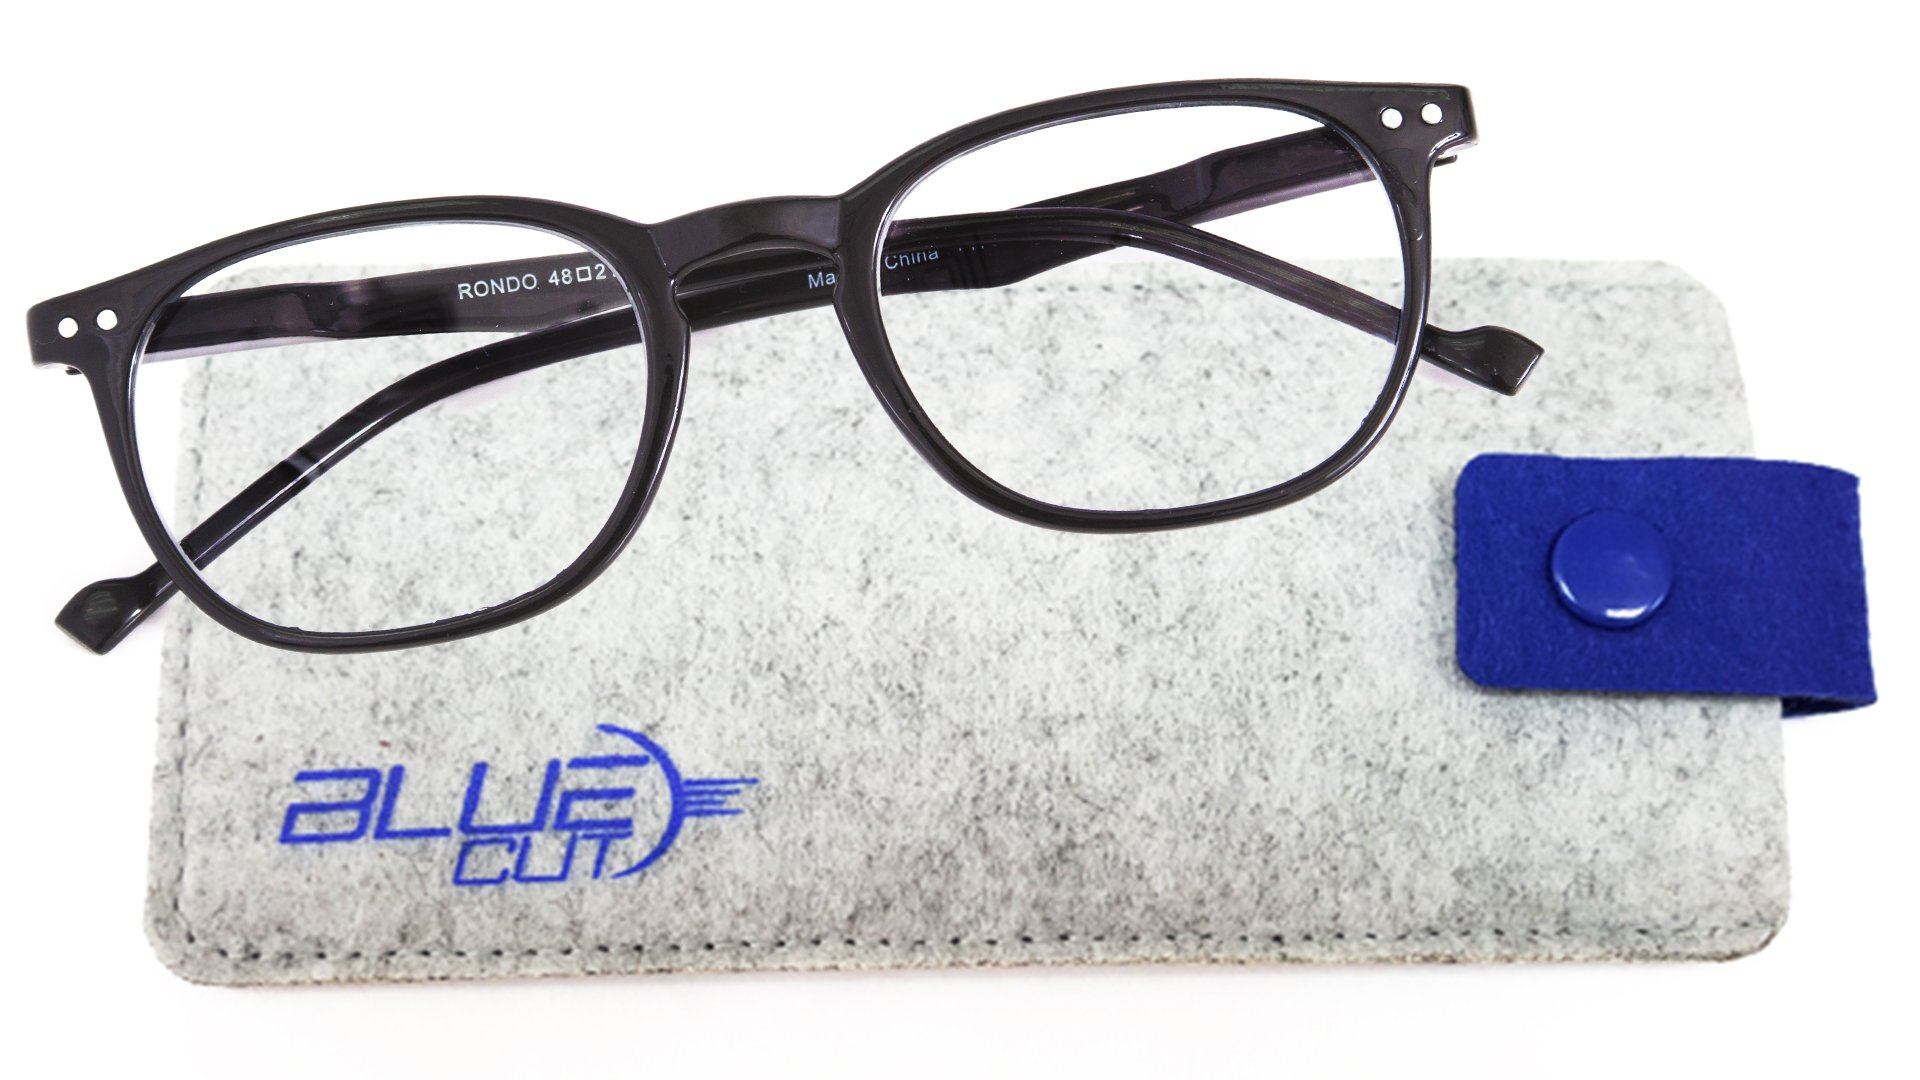 Blue Light Blocking Glasses – Anti-Fatigue, Anti-Glare Computer Glasses – Perfect for Computer, Phone, Tablet, TV Usage – Prevent Headaches and Improve Sleep with UV-Blocking Gamer Glasses by Blue Cut by GREAT PICK